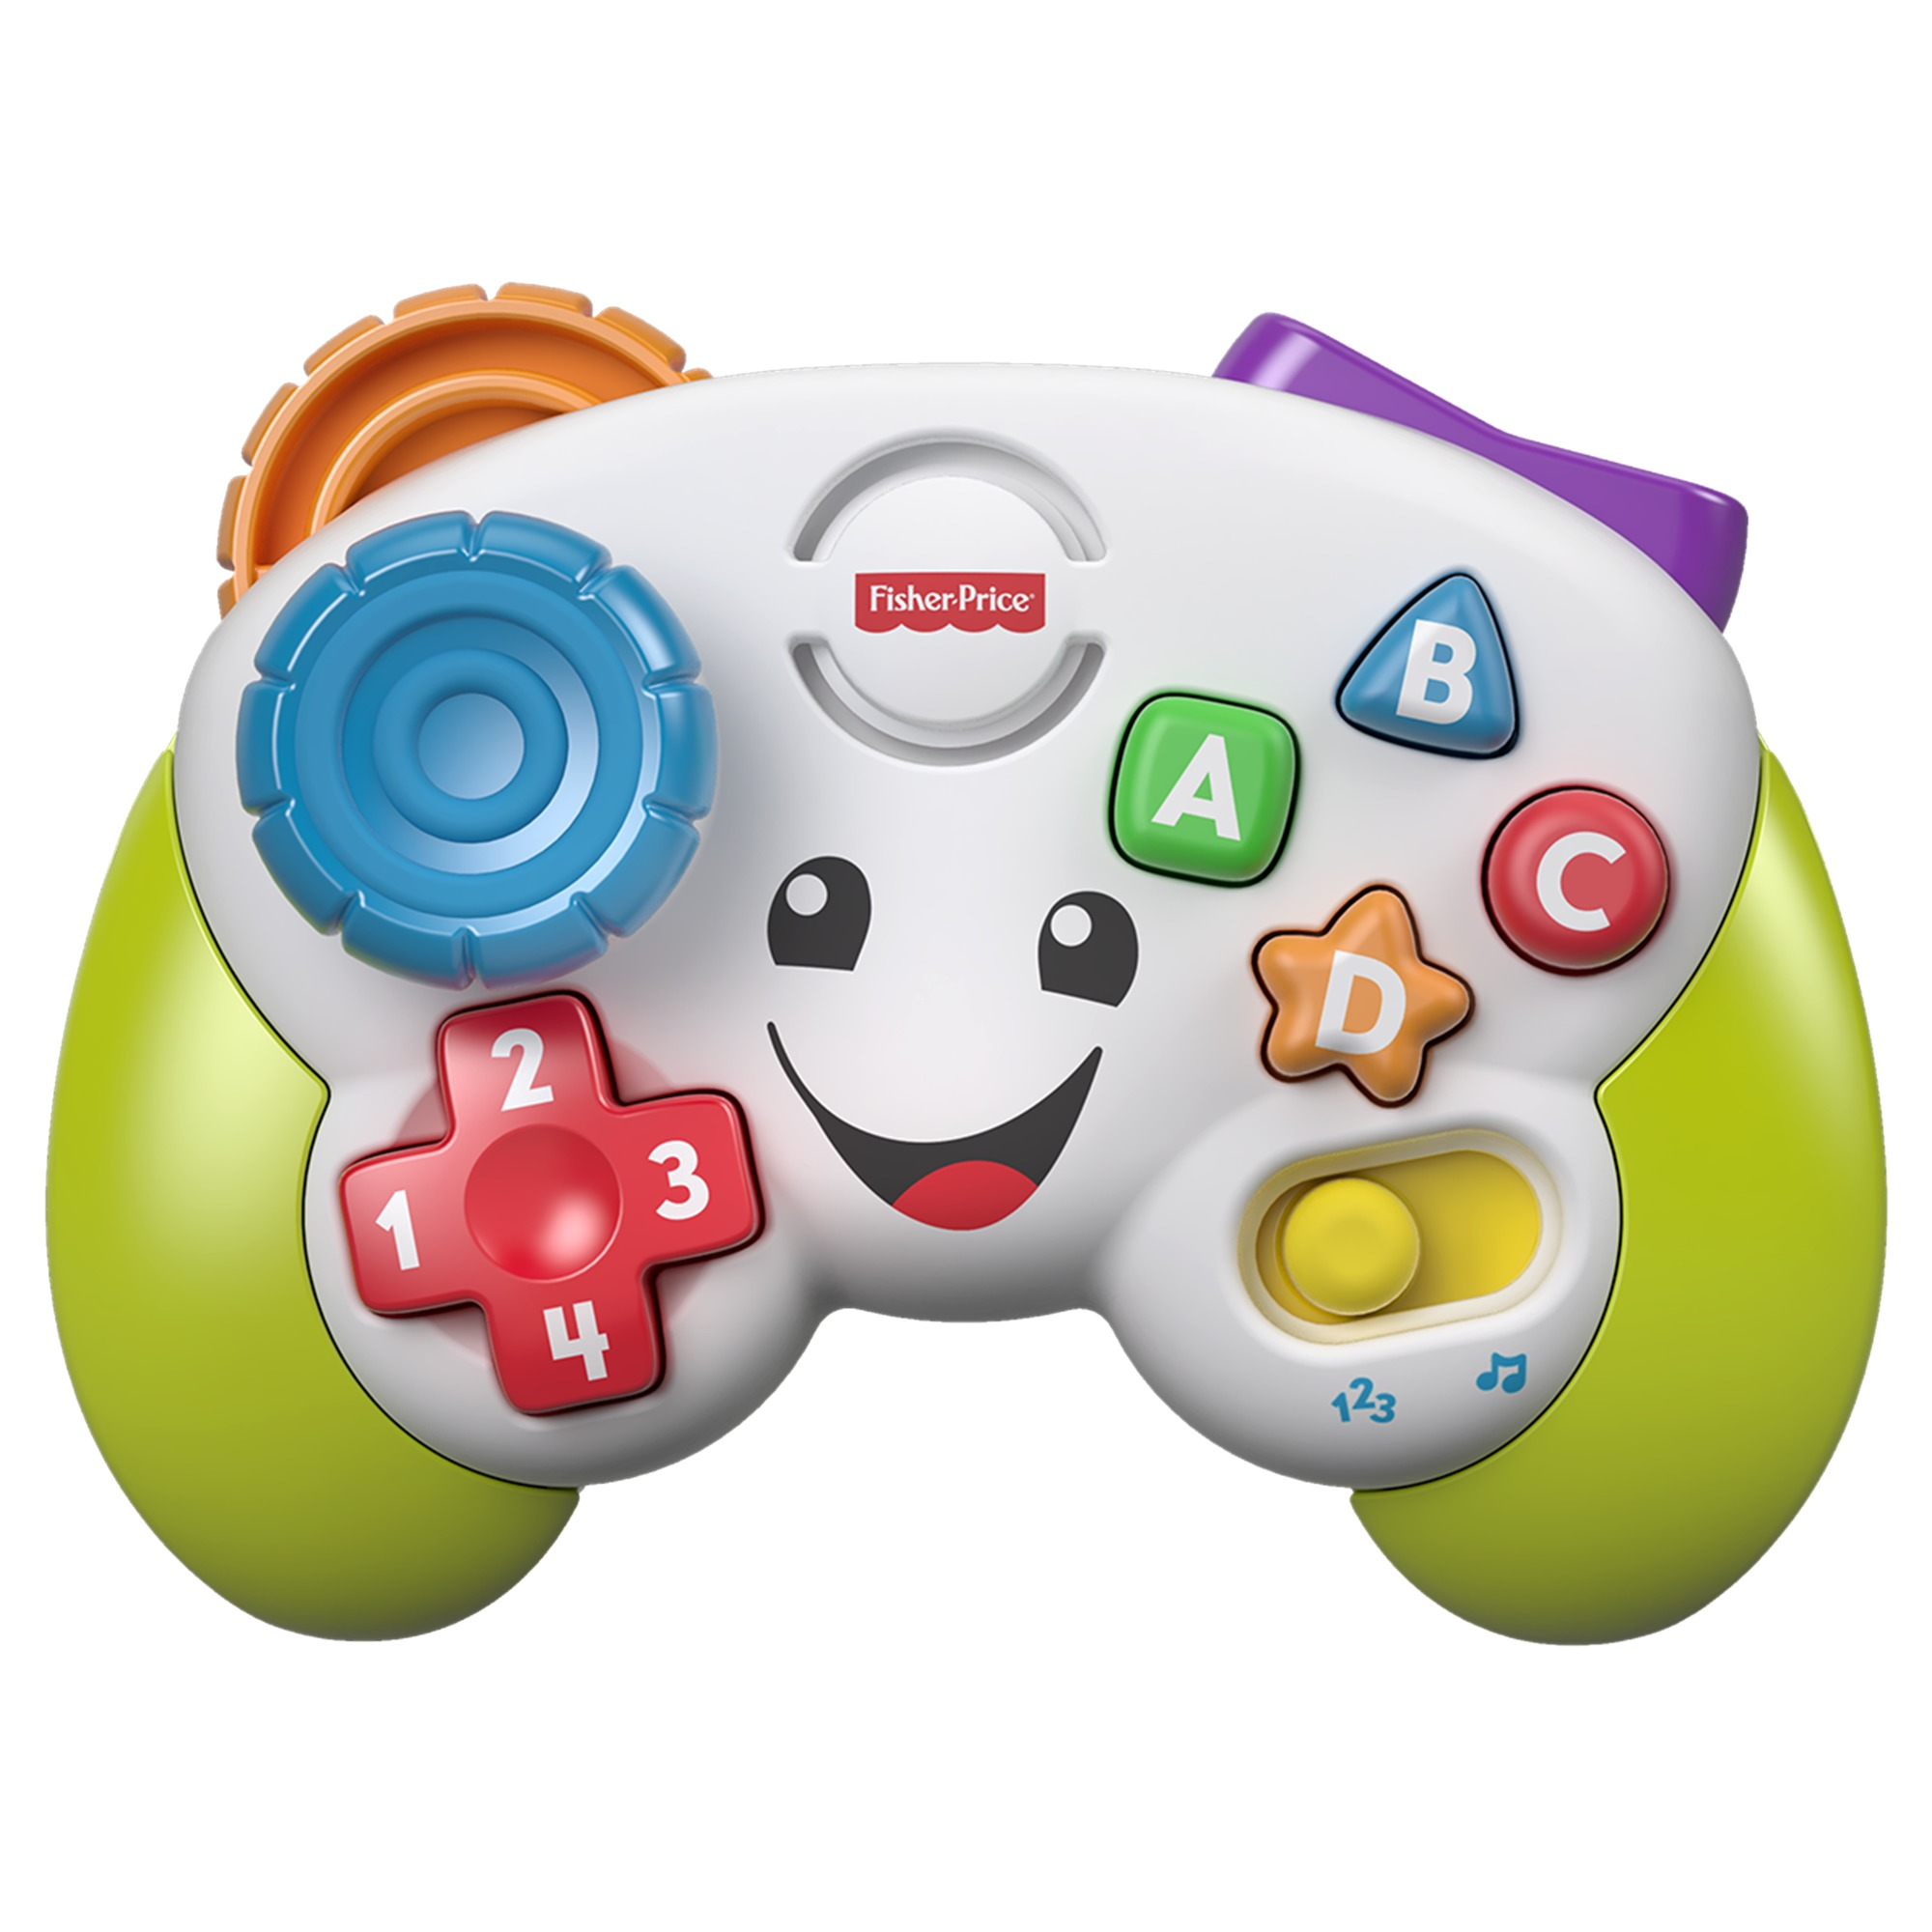 Fisher-Price Laugh and Learn Game Controller